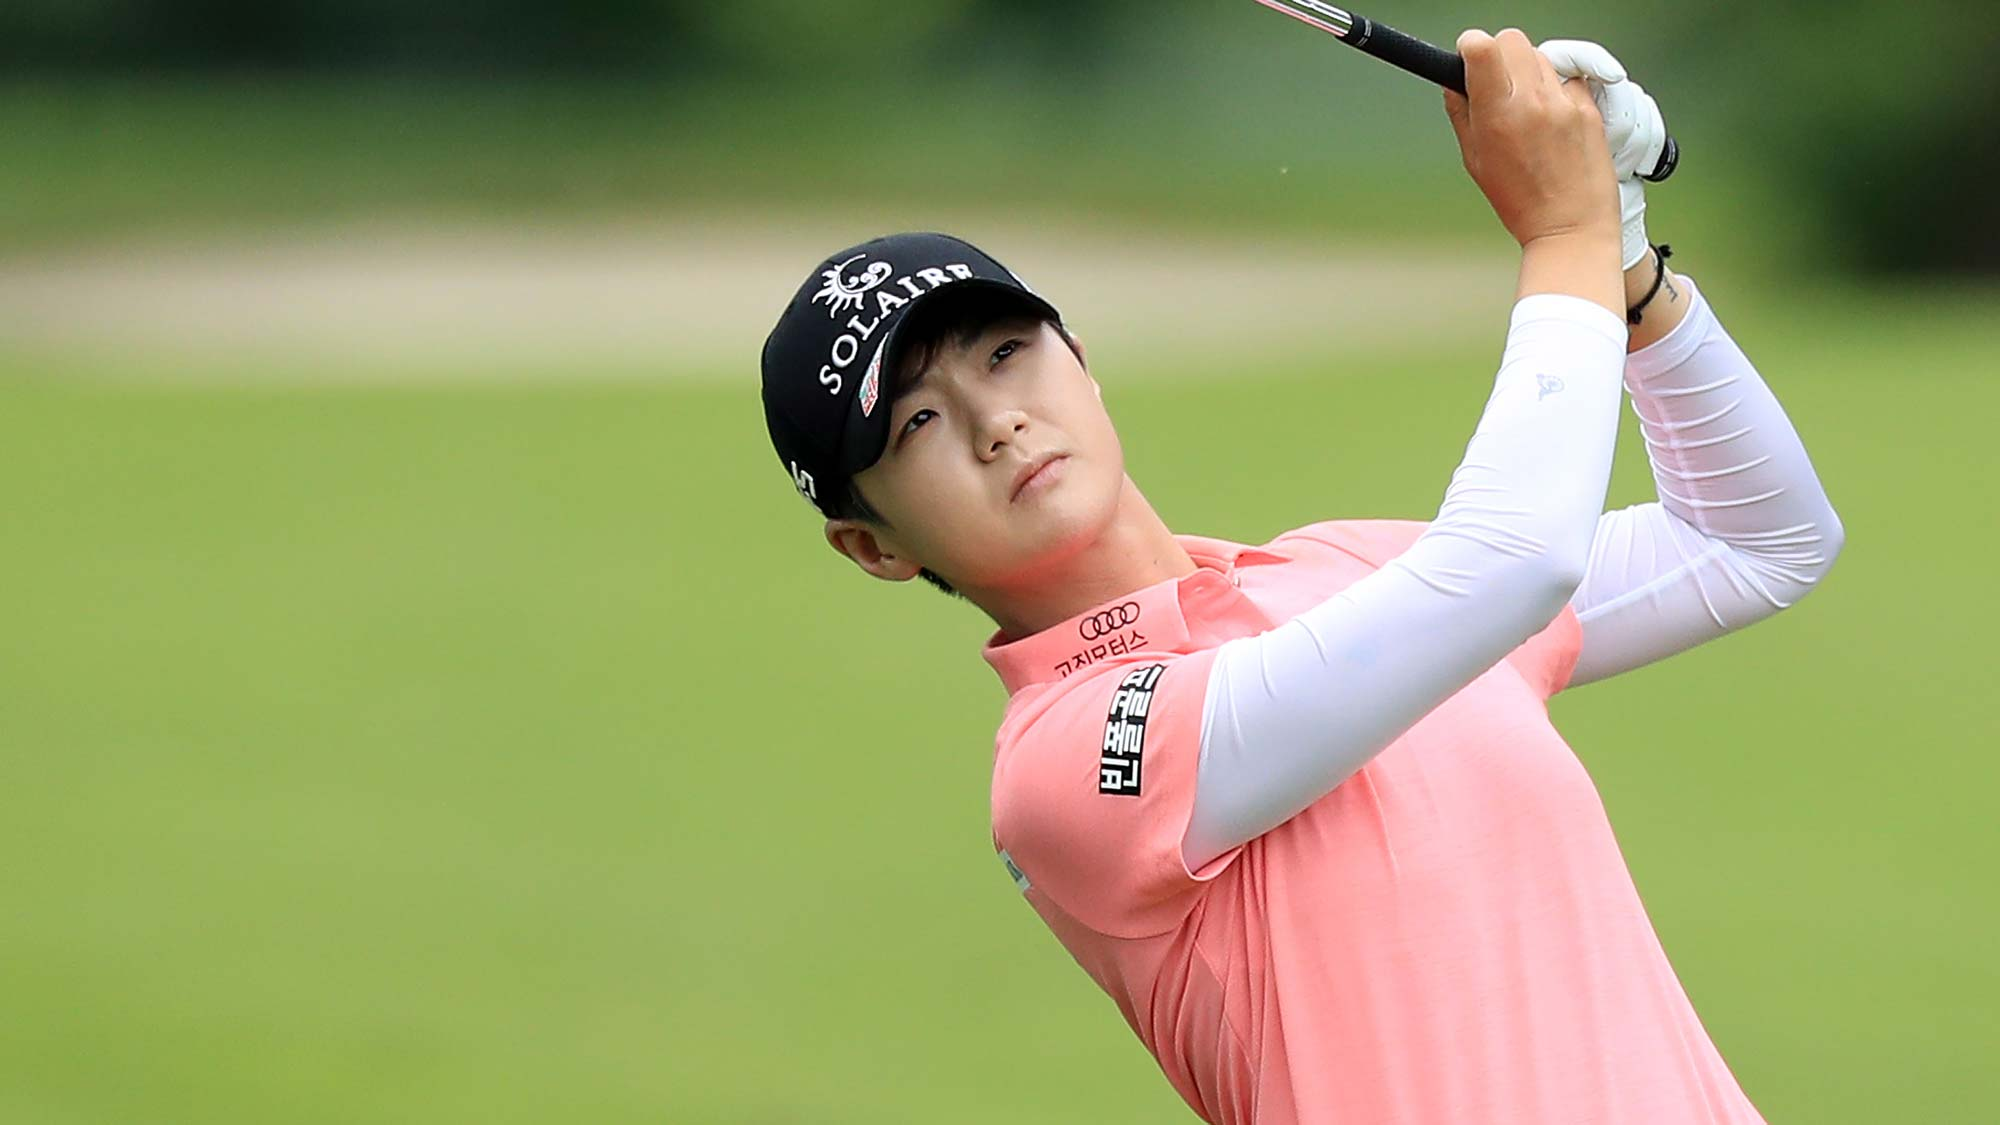 Sung Hyun Park of South Korea plays her second shot on the par 4, sixth hole during the third round of the 2019 Women's PGA Championship